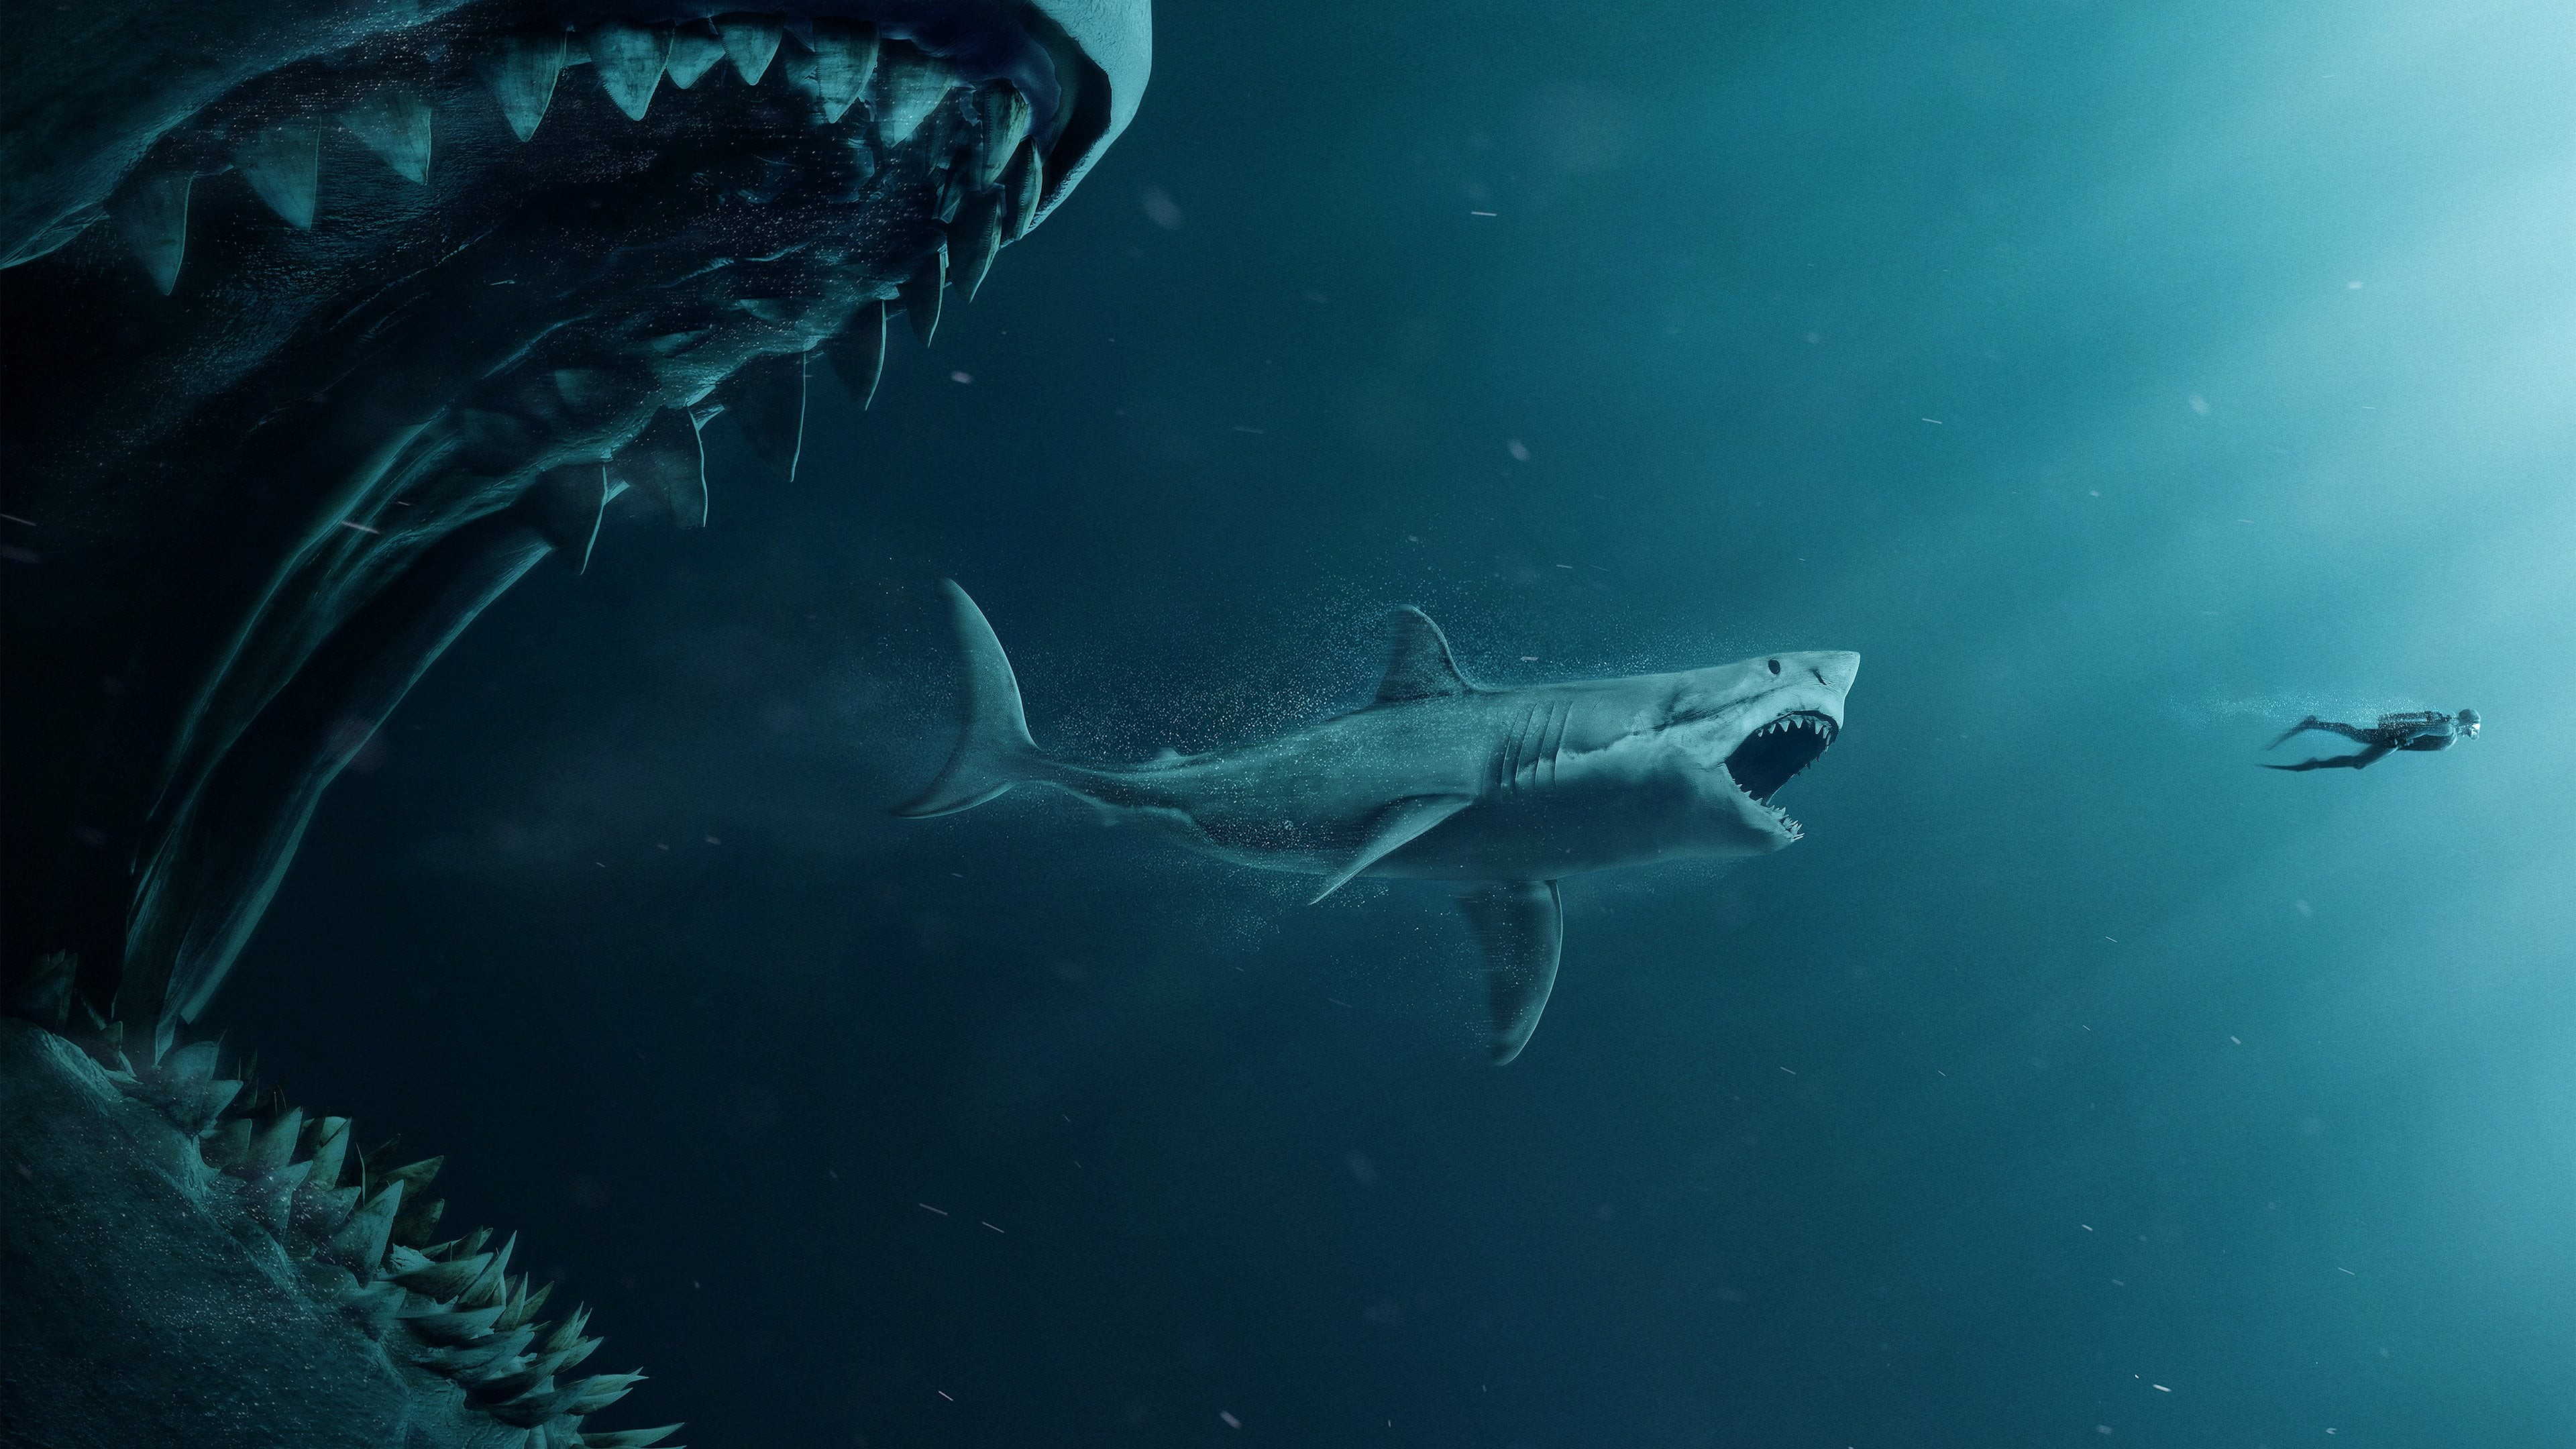 megalodon shark movie - HD 1920×1200